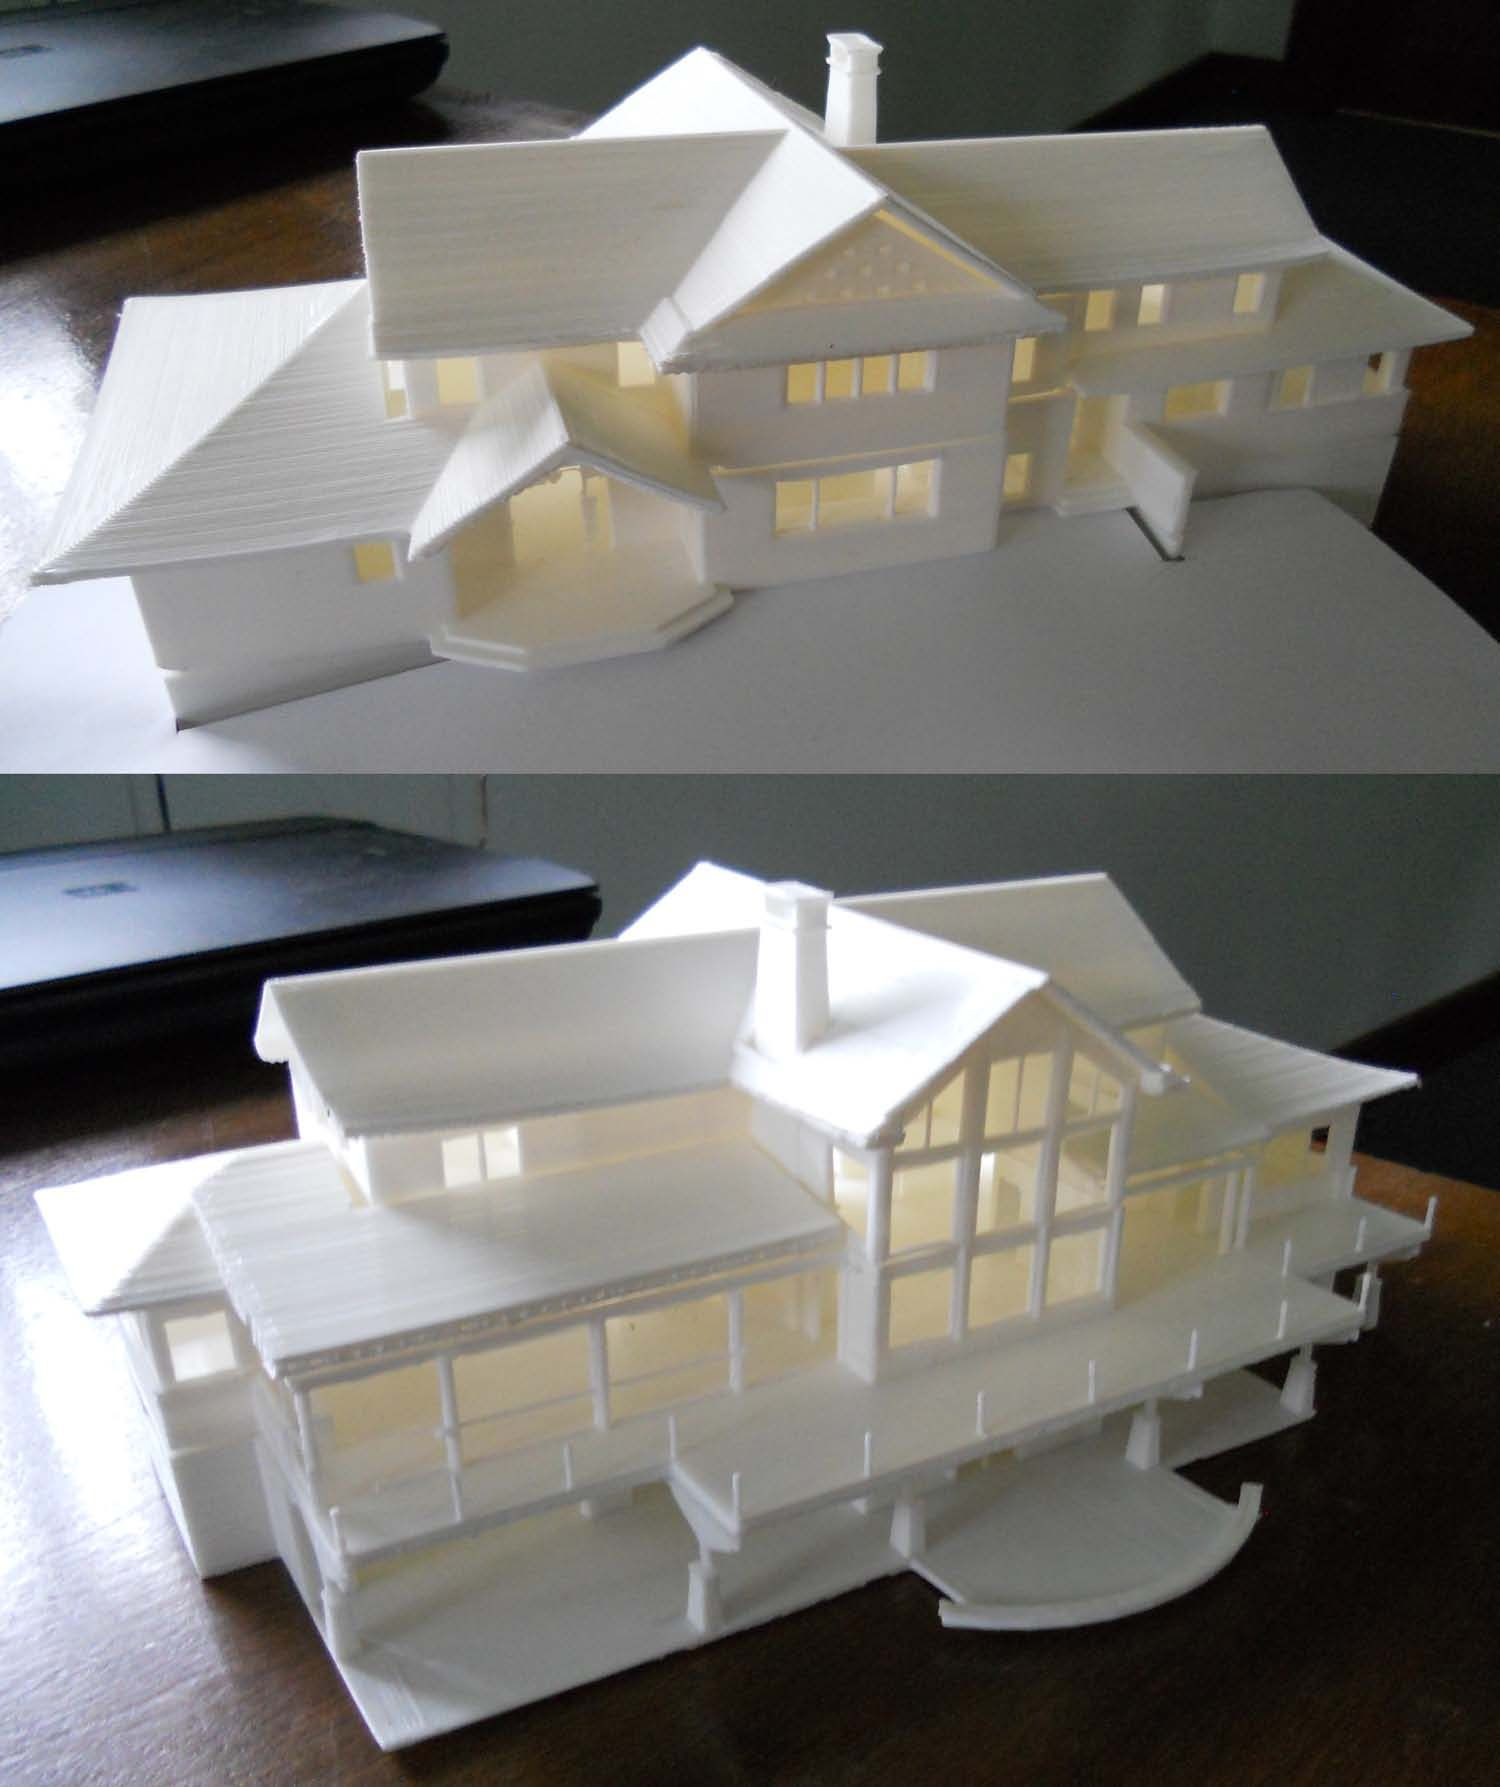 """What Is This? A House For Ants?"" No...It's A 3D Printed"